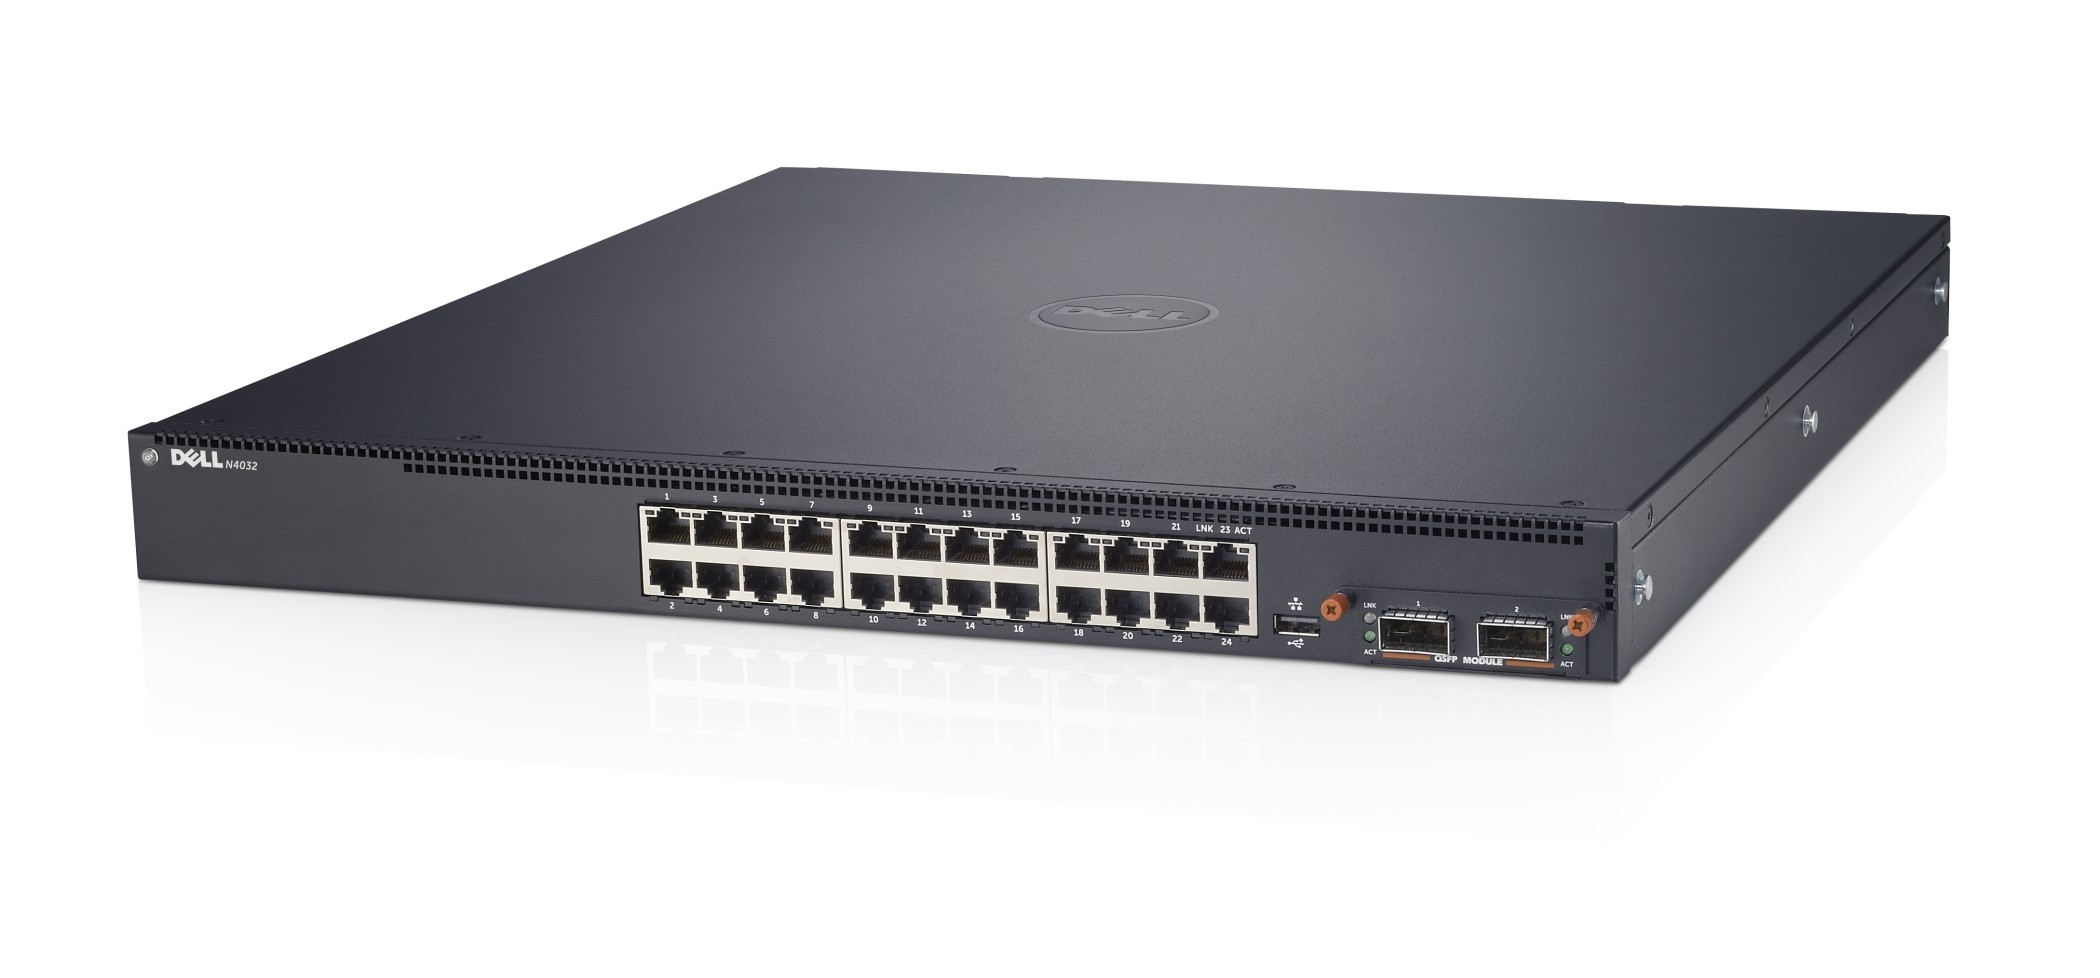 Коммутатор Dell Networking N2024P, L2, POE+, 24x 1GbE + 2x 10GbE SFP+ fixed ports, Stacking, IO to PSU air, AC, Stacking Cable 1m,